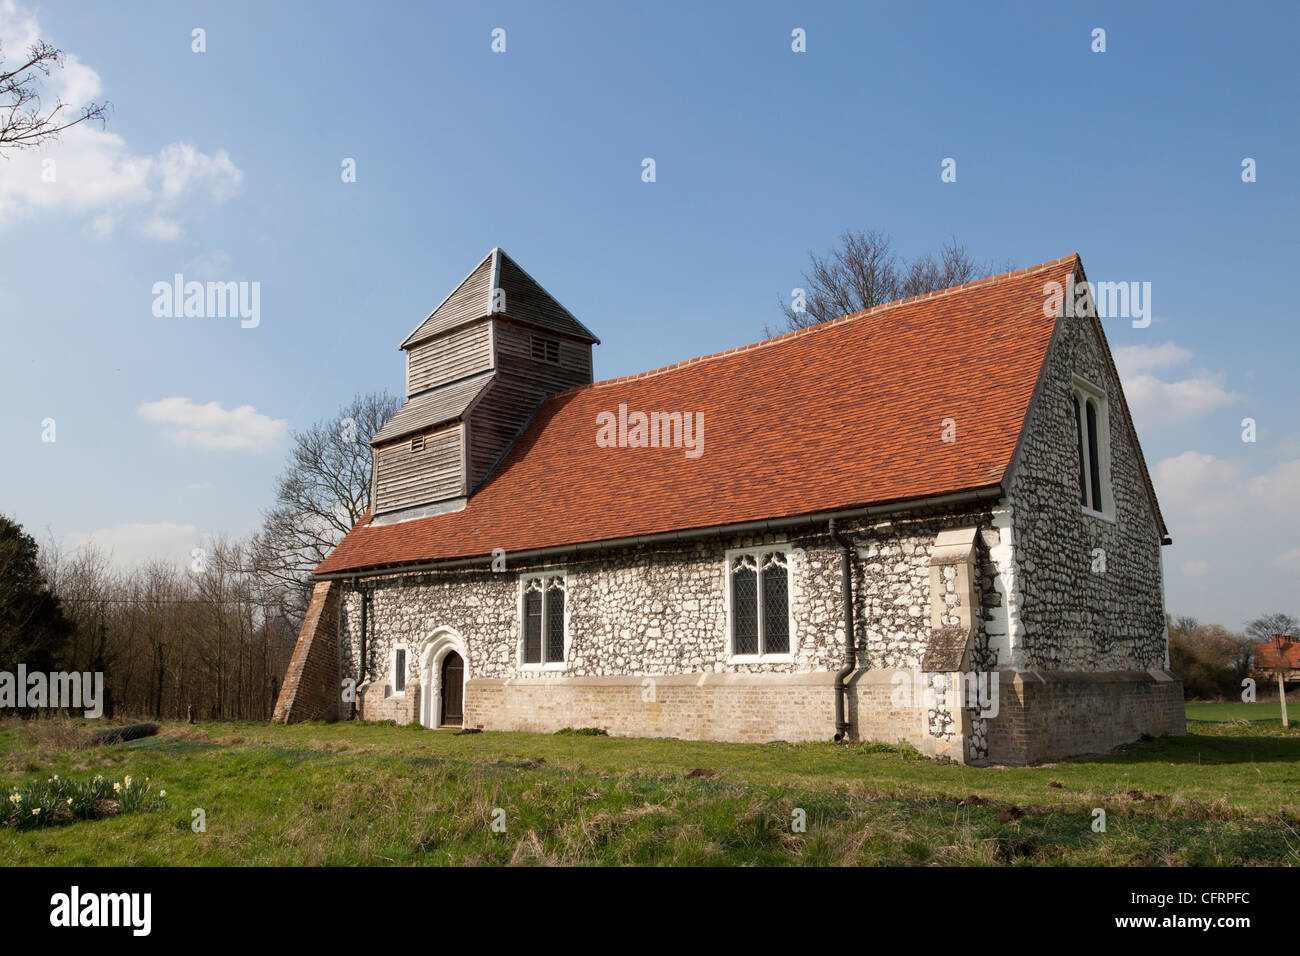 St Mary Magdalene church, a grade 1 listed building, Boveney, Buckinghamshire, England, UK - Stock Image